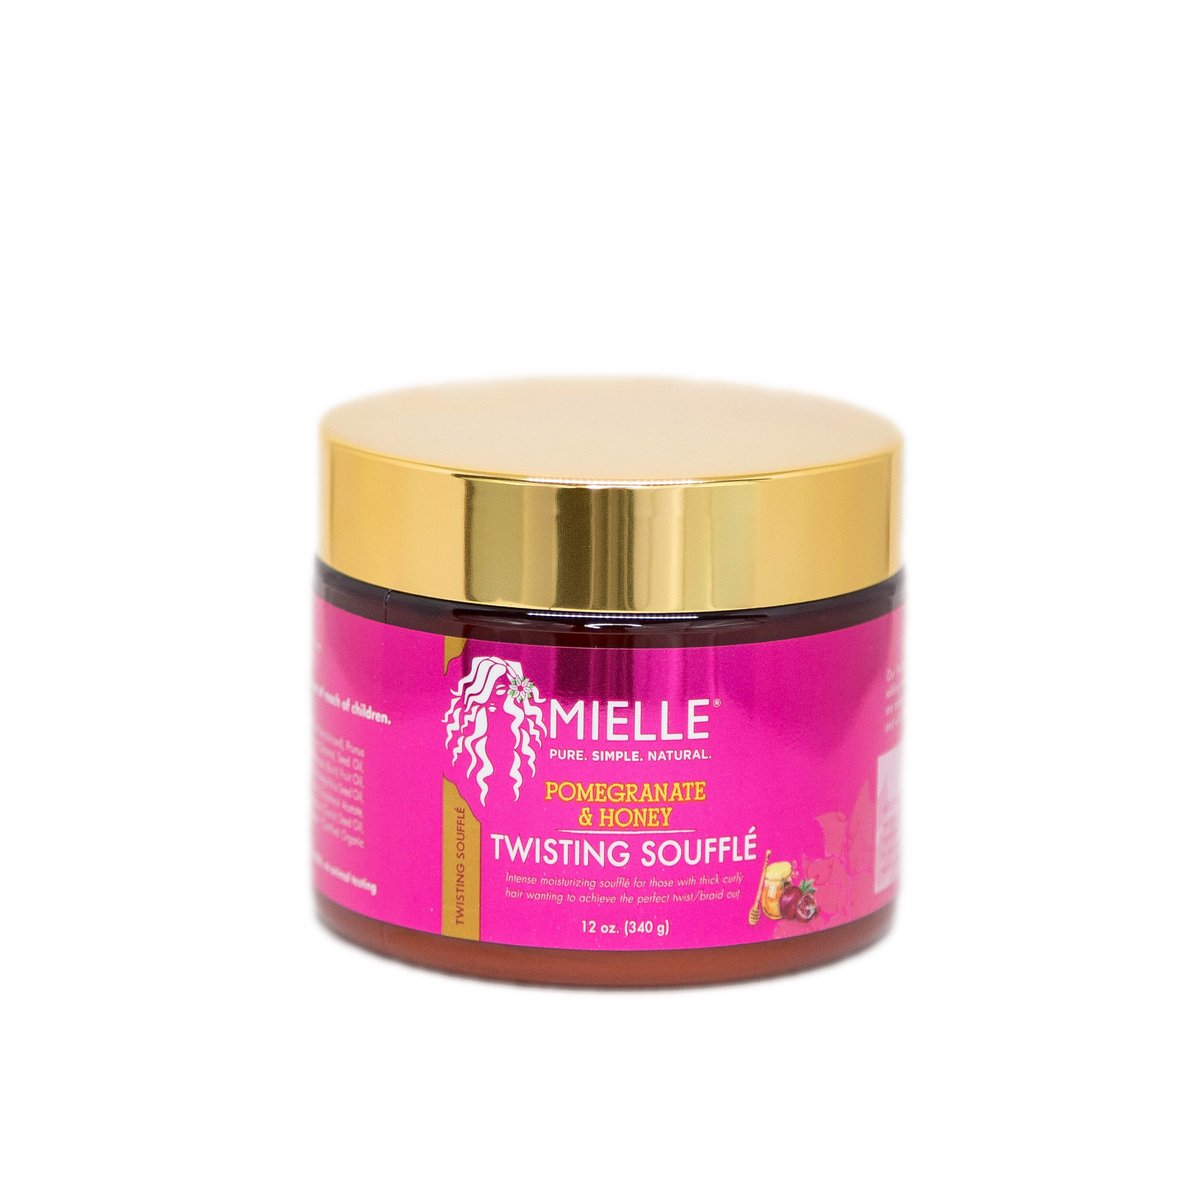 Mielle Organics Pomegranate & Honey Twisting Souffle 340gr